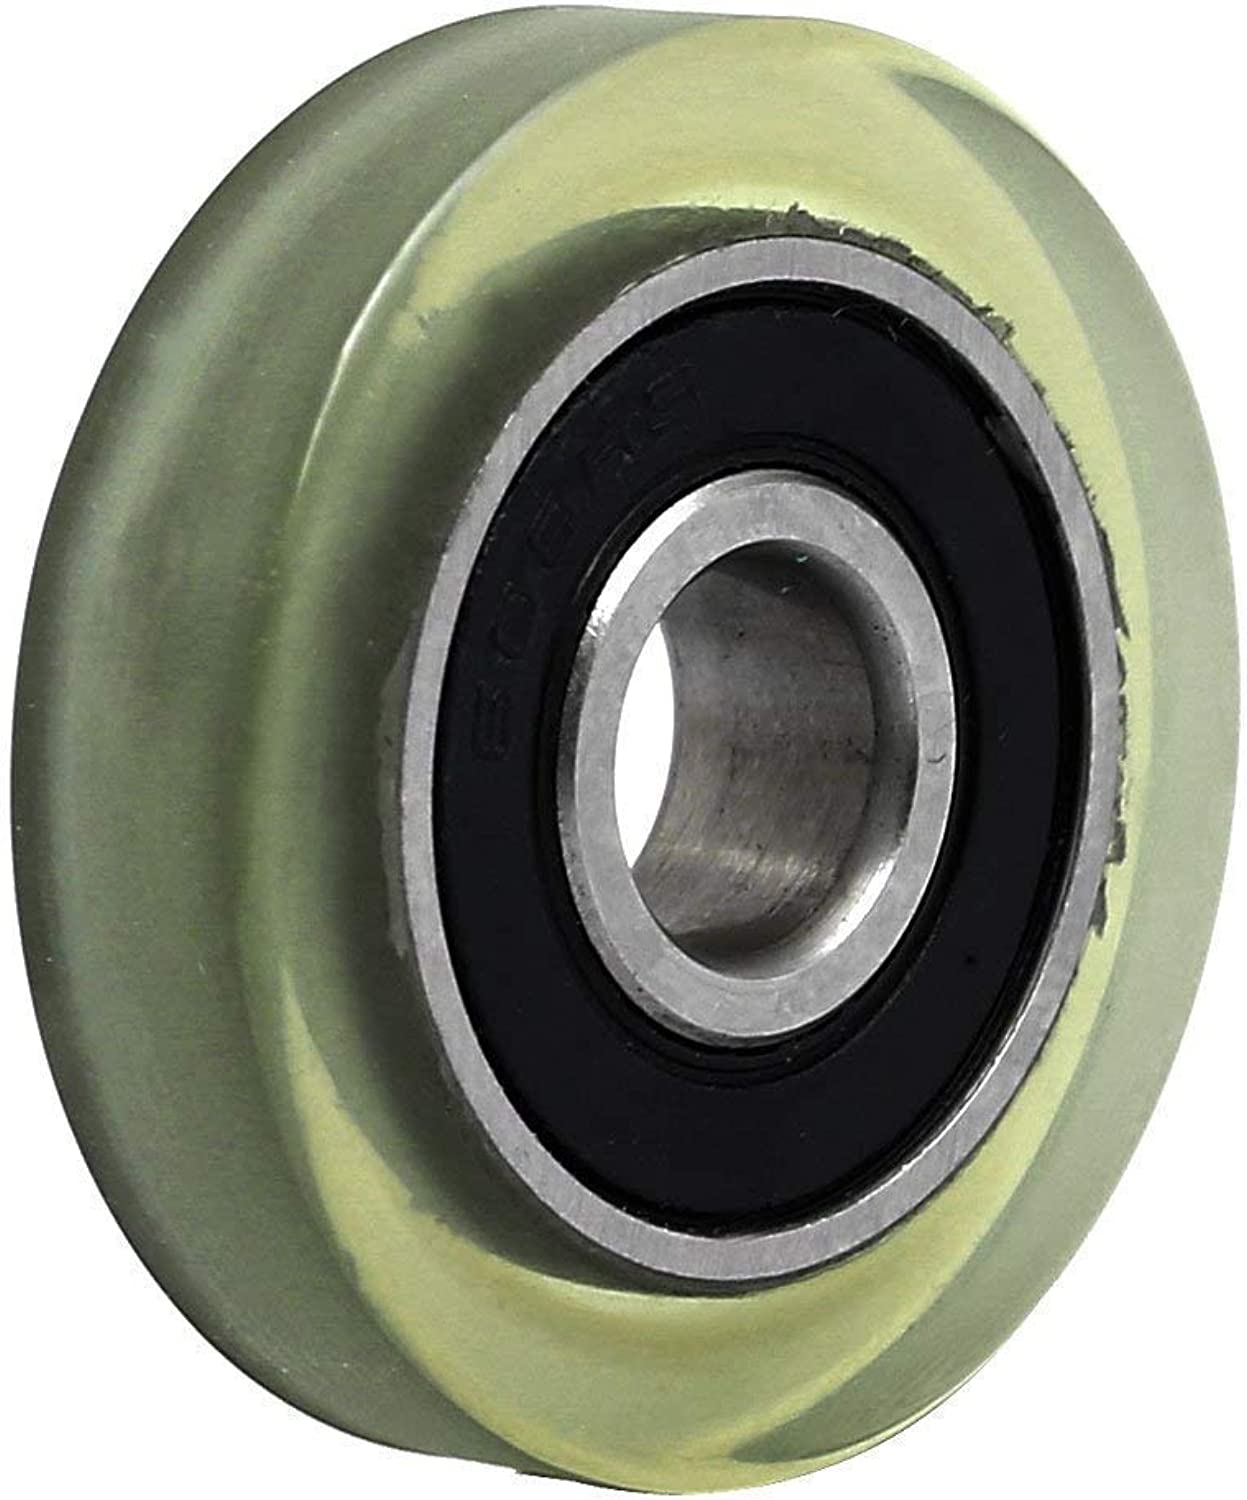 8mmx30mmx7mm PU Coated Ball Bearing Pulley Roller Wheel Clear